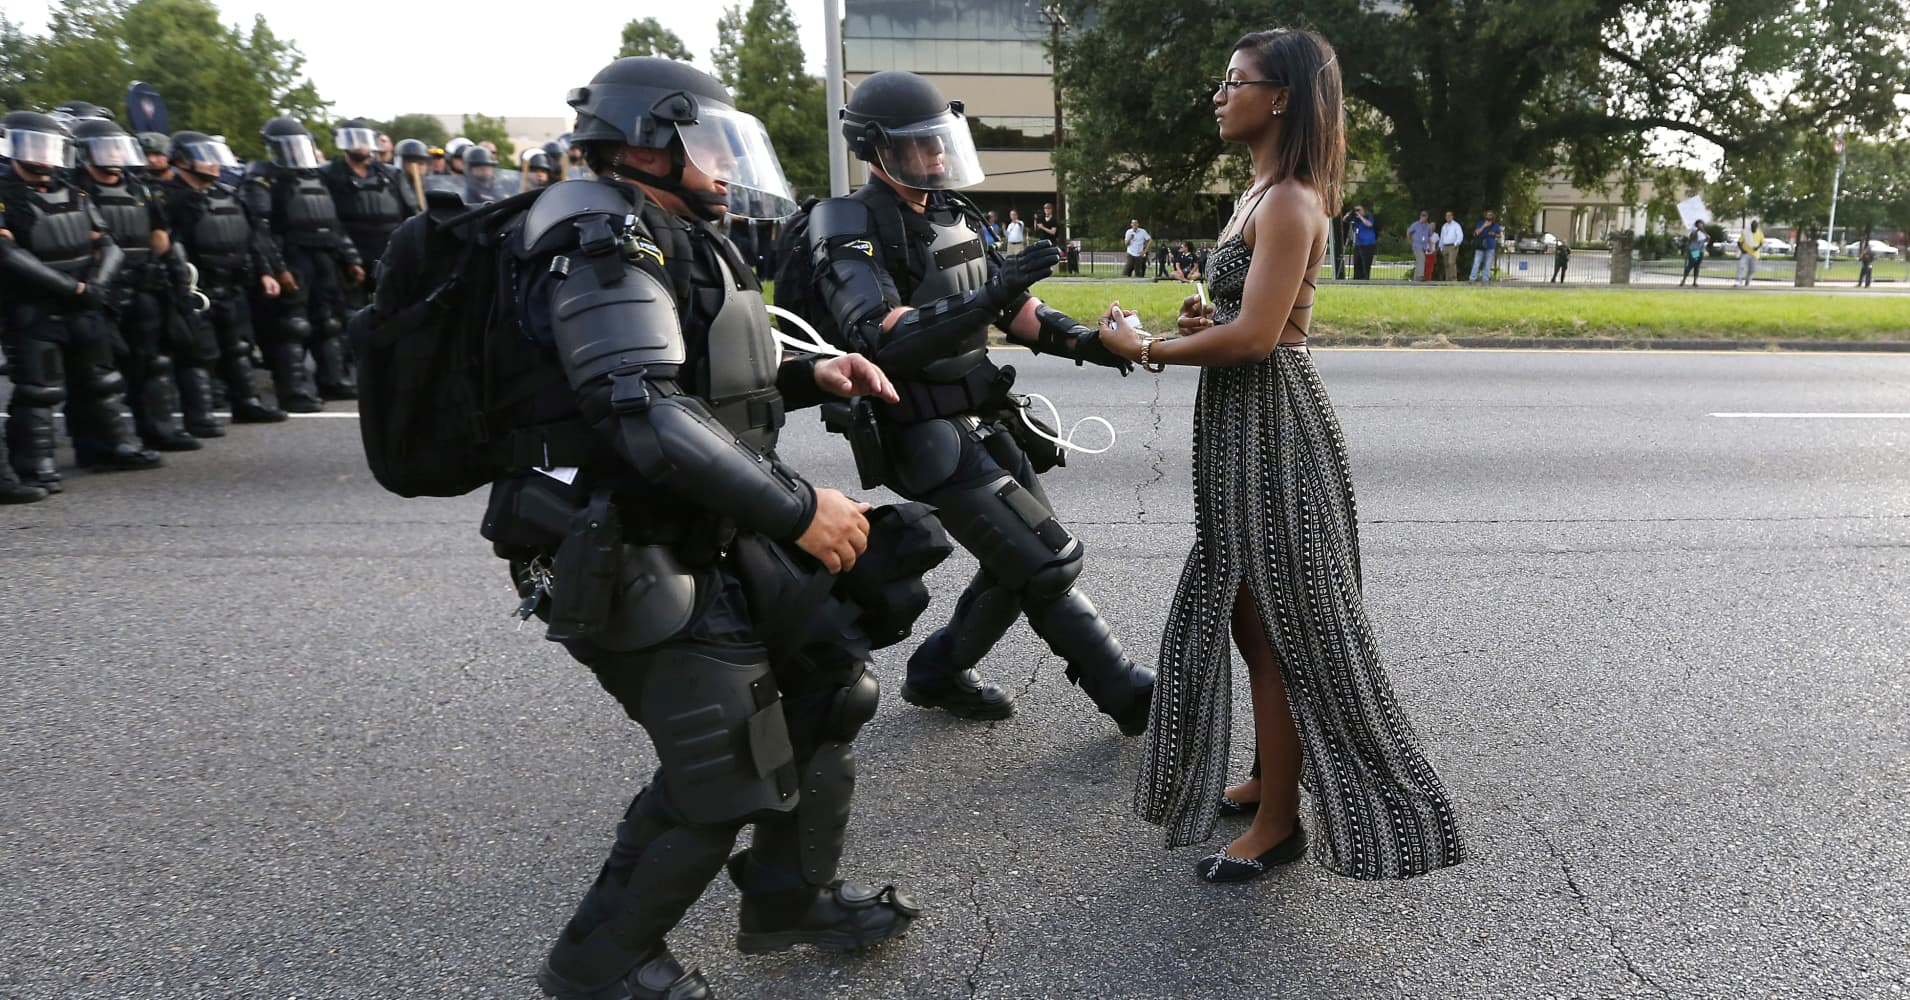 Ieshia Evans is detained by law enforcement as she protests the shooting death of Alton Sterling near the headquarters of the Baton Rouge Police Department in Louisiana, U.S. July 9, 2016.